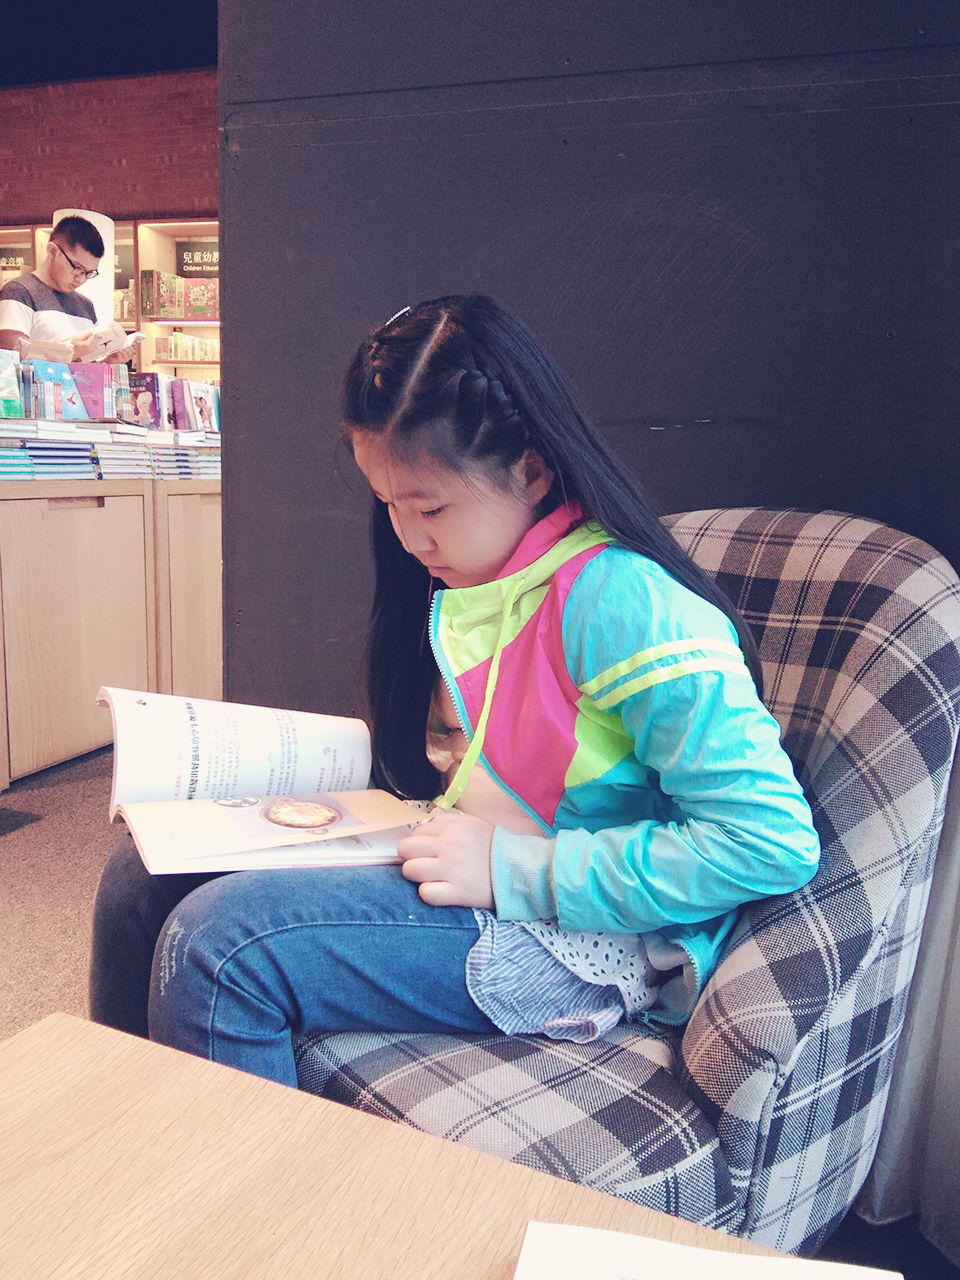 real people, sitting, technology, black hair, childhood, casual clothing, indoors, home interior, full length, one person, wireless technology, leisure activity, lifestyles, girls, day, young adult, people